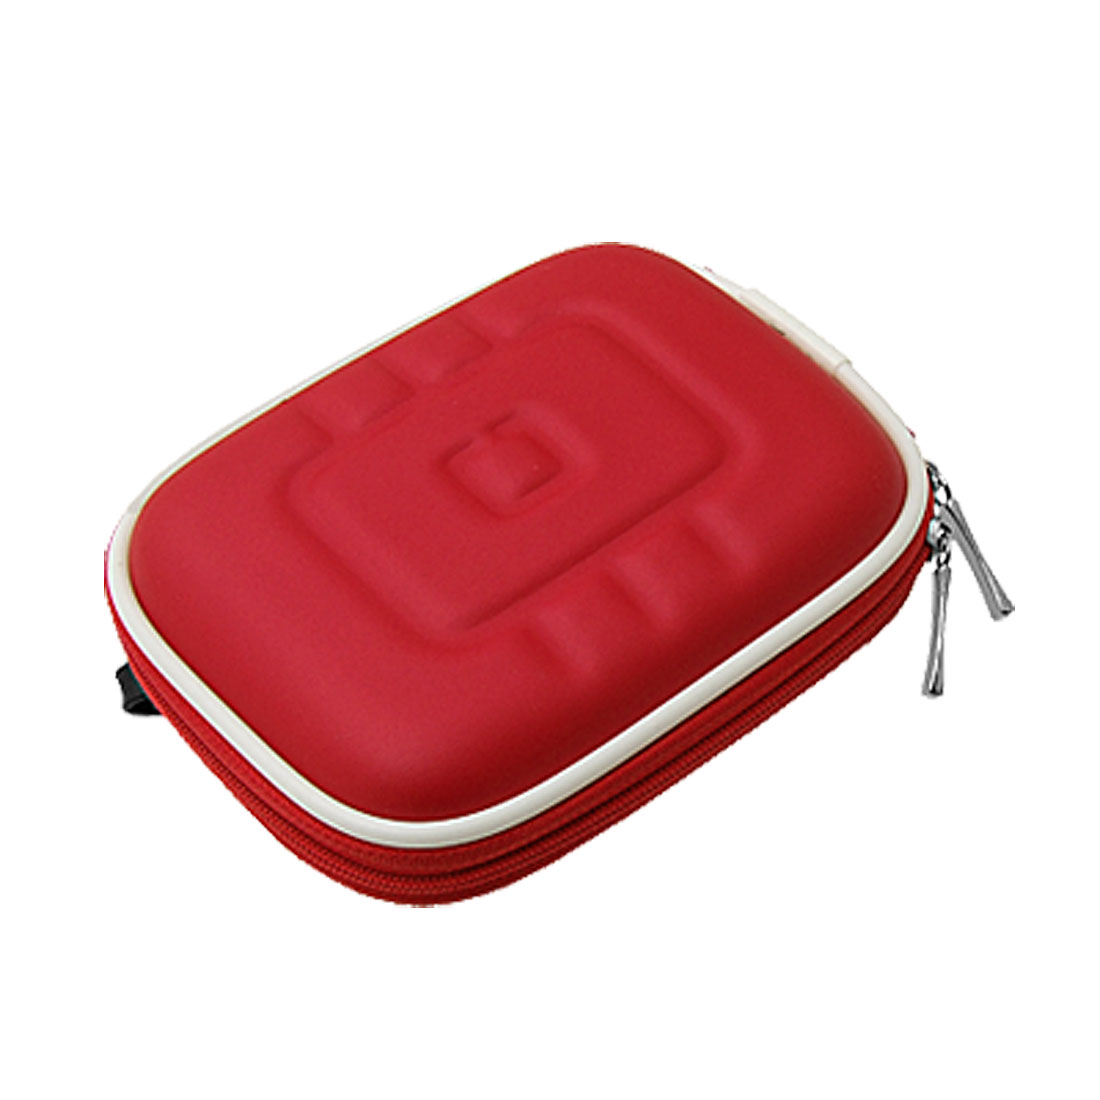 Unique Bargains Red Travel Carrying Case Bag with Carabiner for GPS